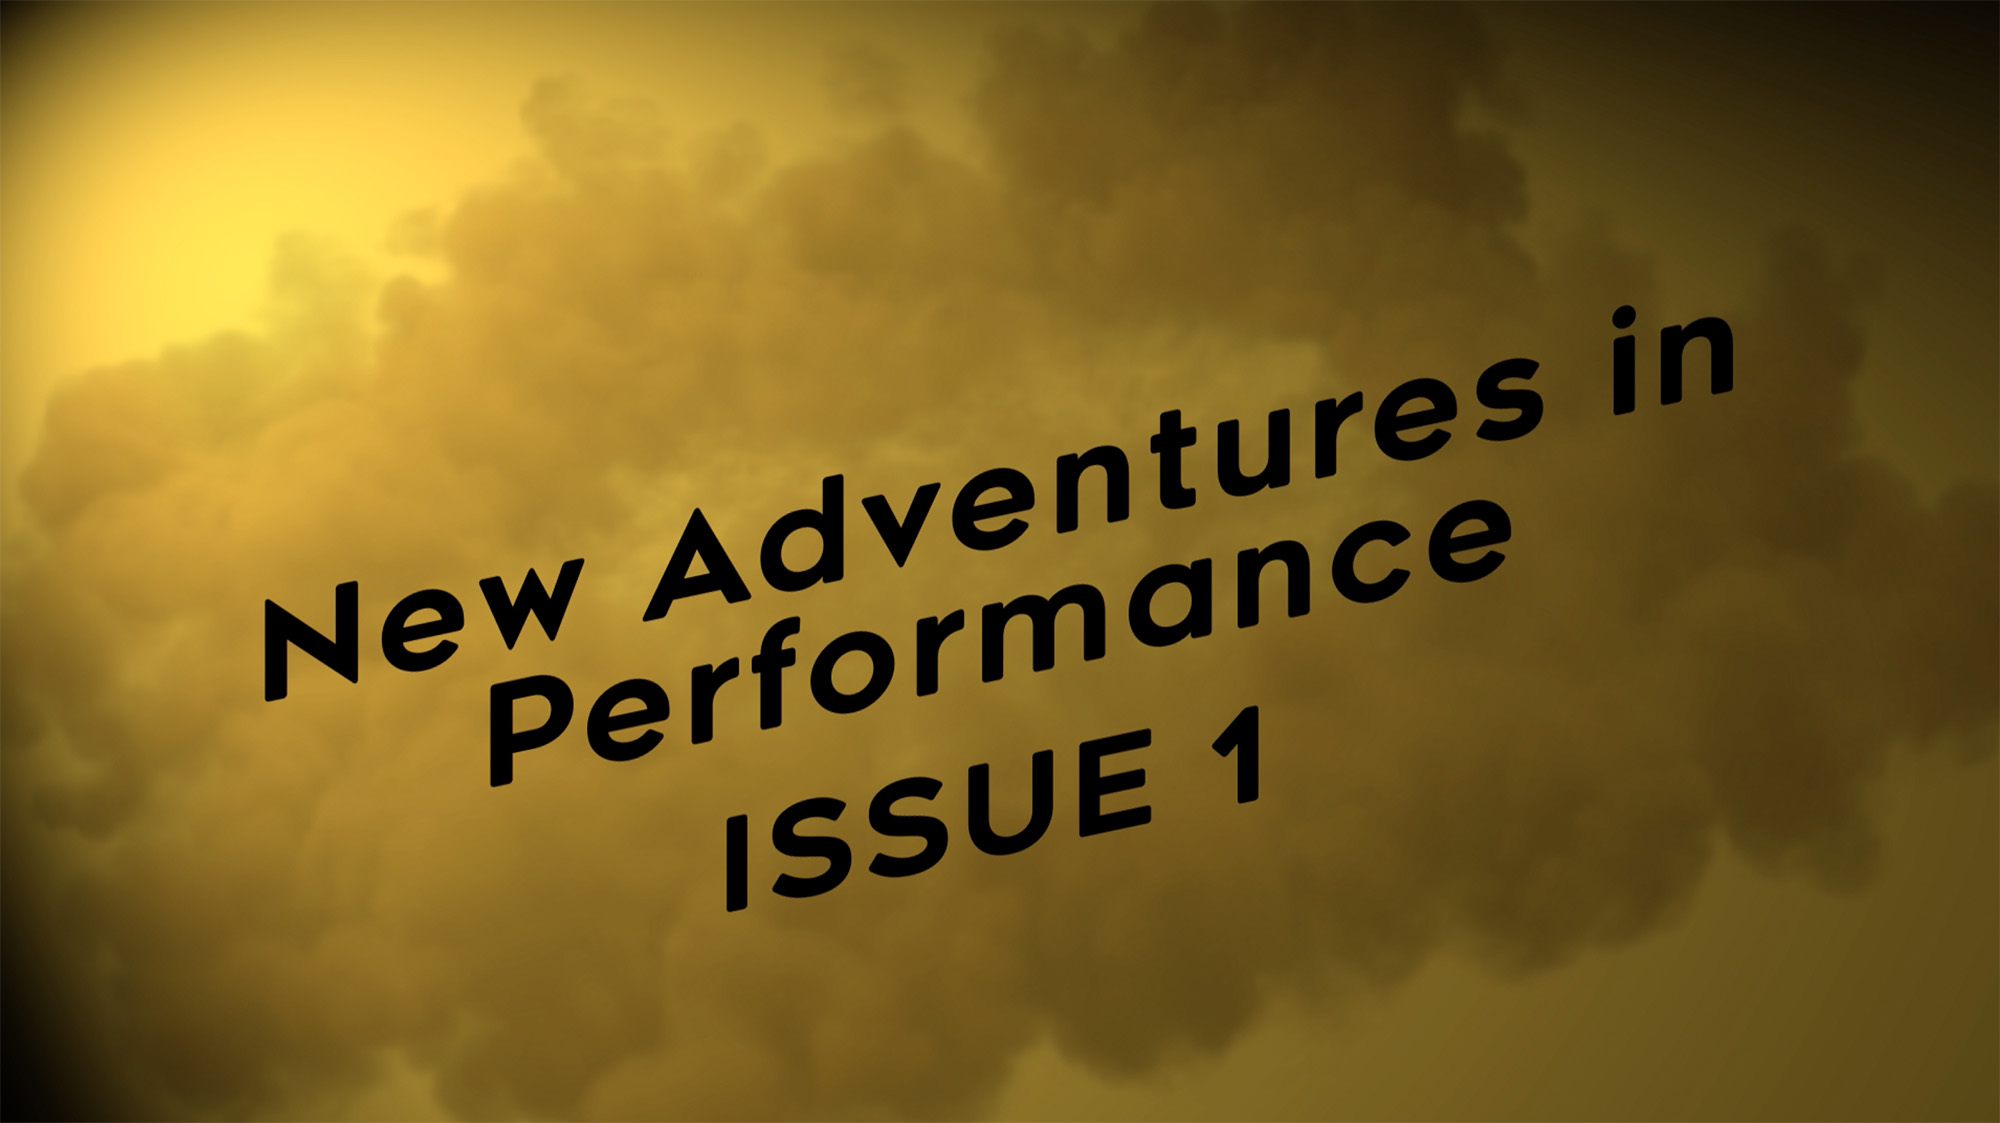 New Adventures in Performance - Issue 1 - April 2019